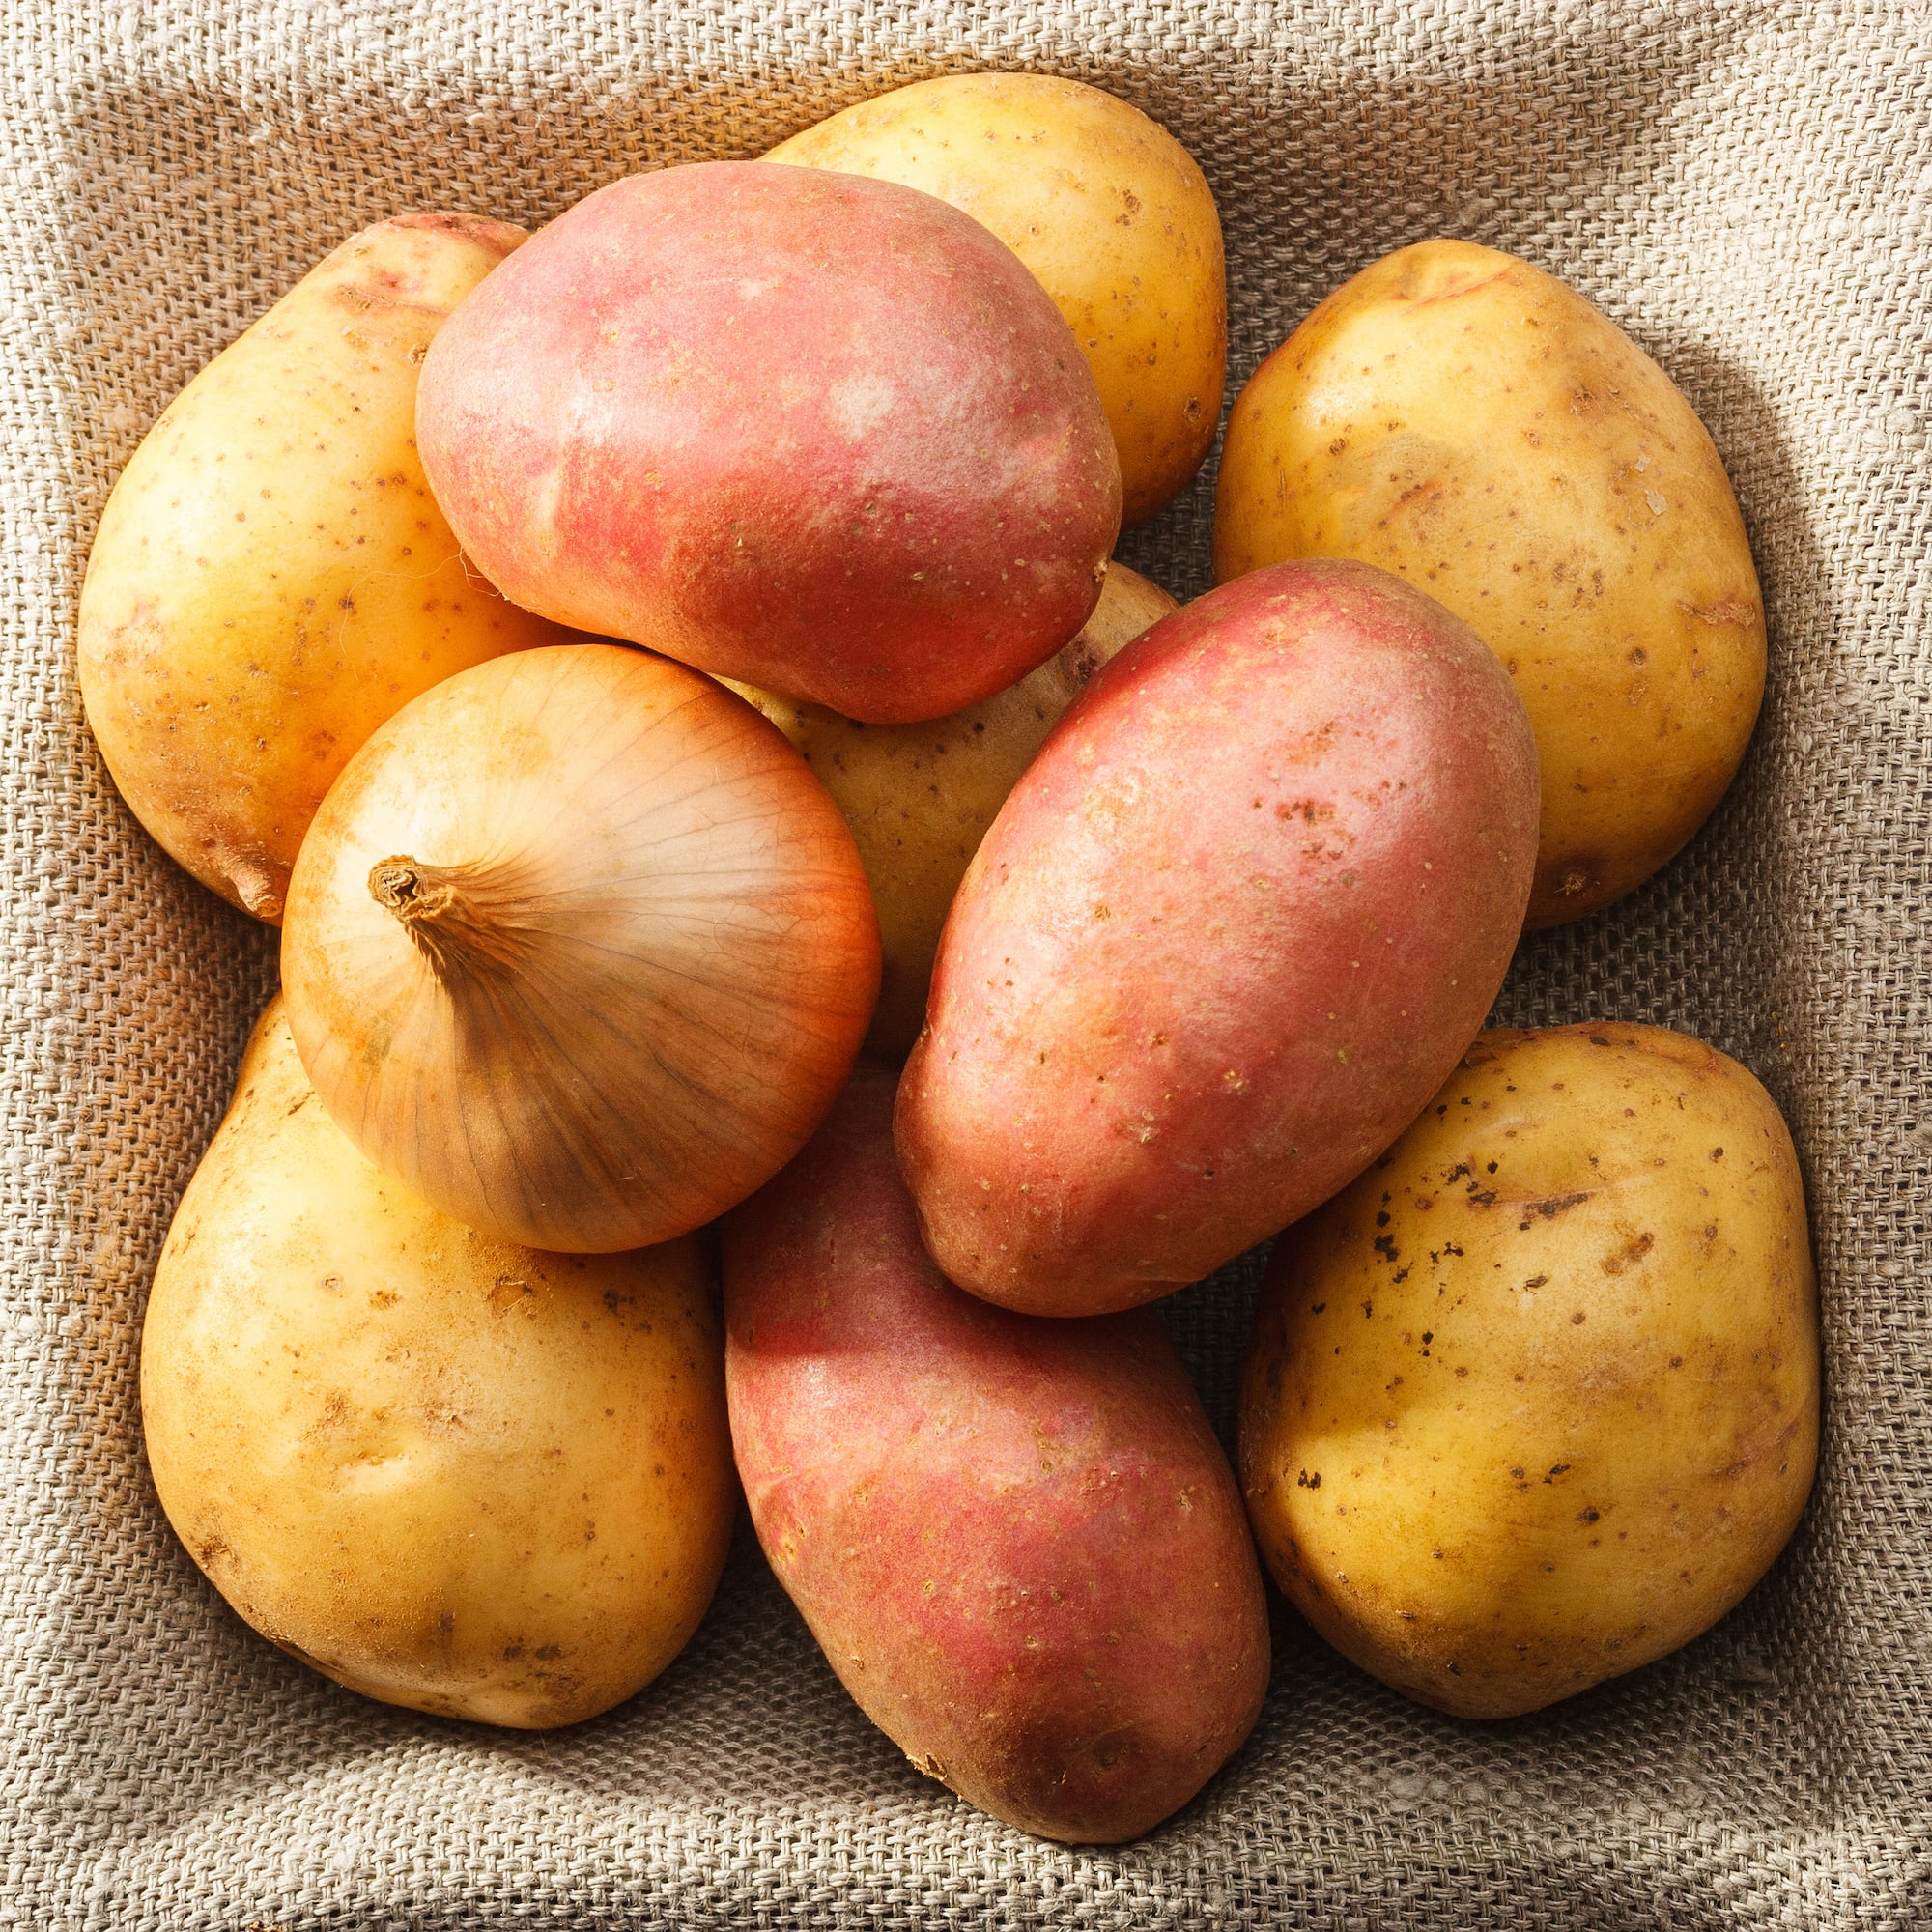 Select Seasonal Items Now Available! - Stop in to pick up seed potatoes, onion plants and onion sets! Please note: these will be available on a seasonal basis.